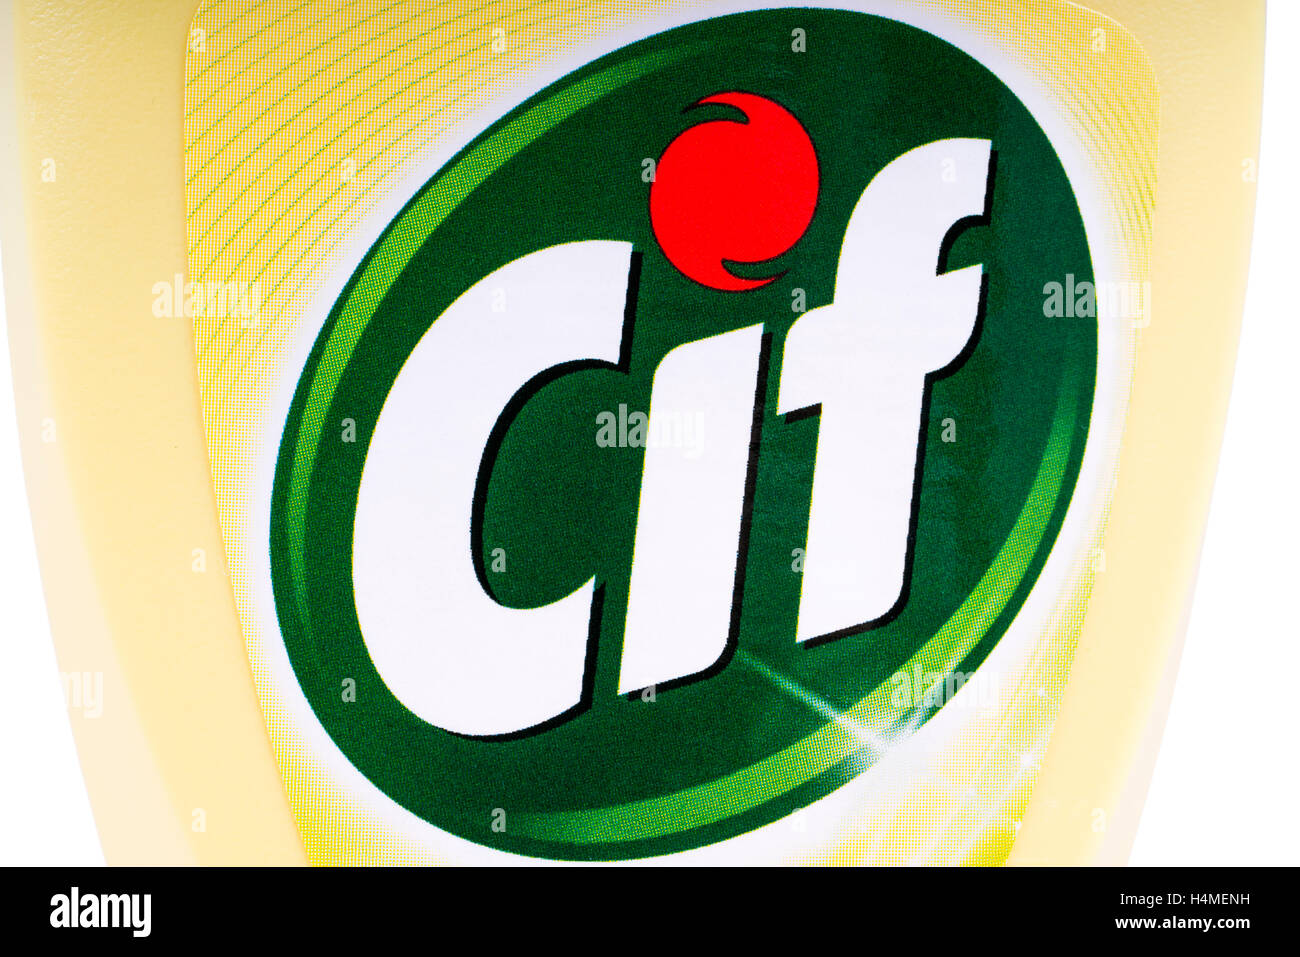 LONDON, UK - OCTOBER 13TH 2016: A close-up of the Cif logo on one of the brand's household cleaning products. - Stock Image